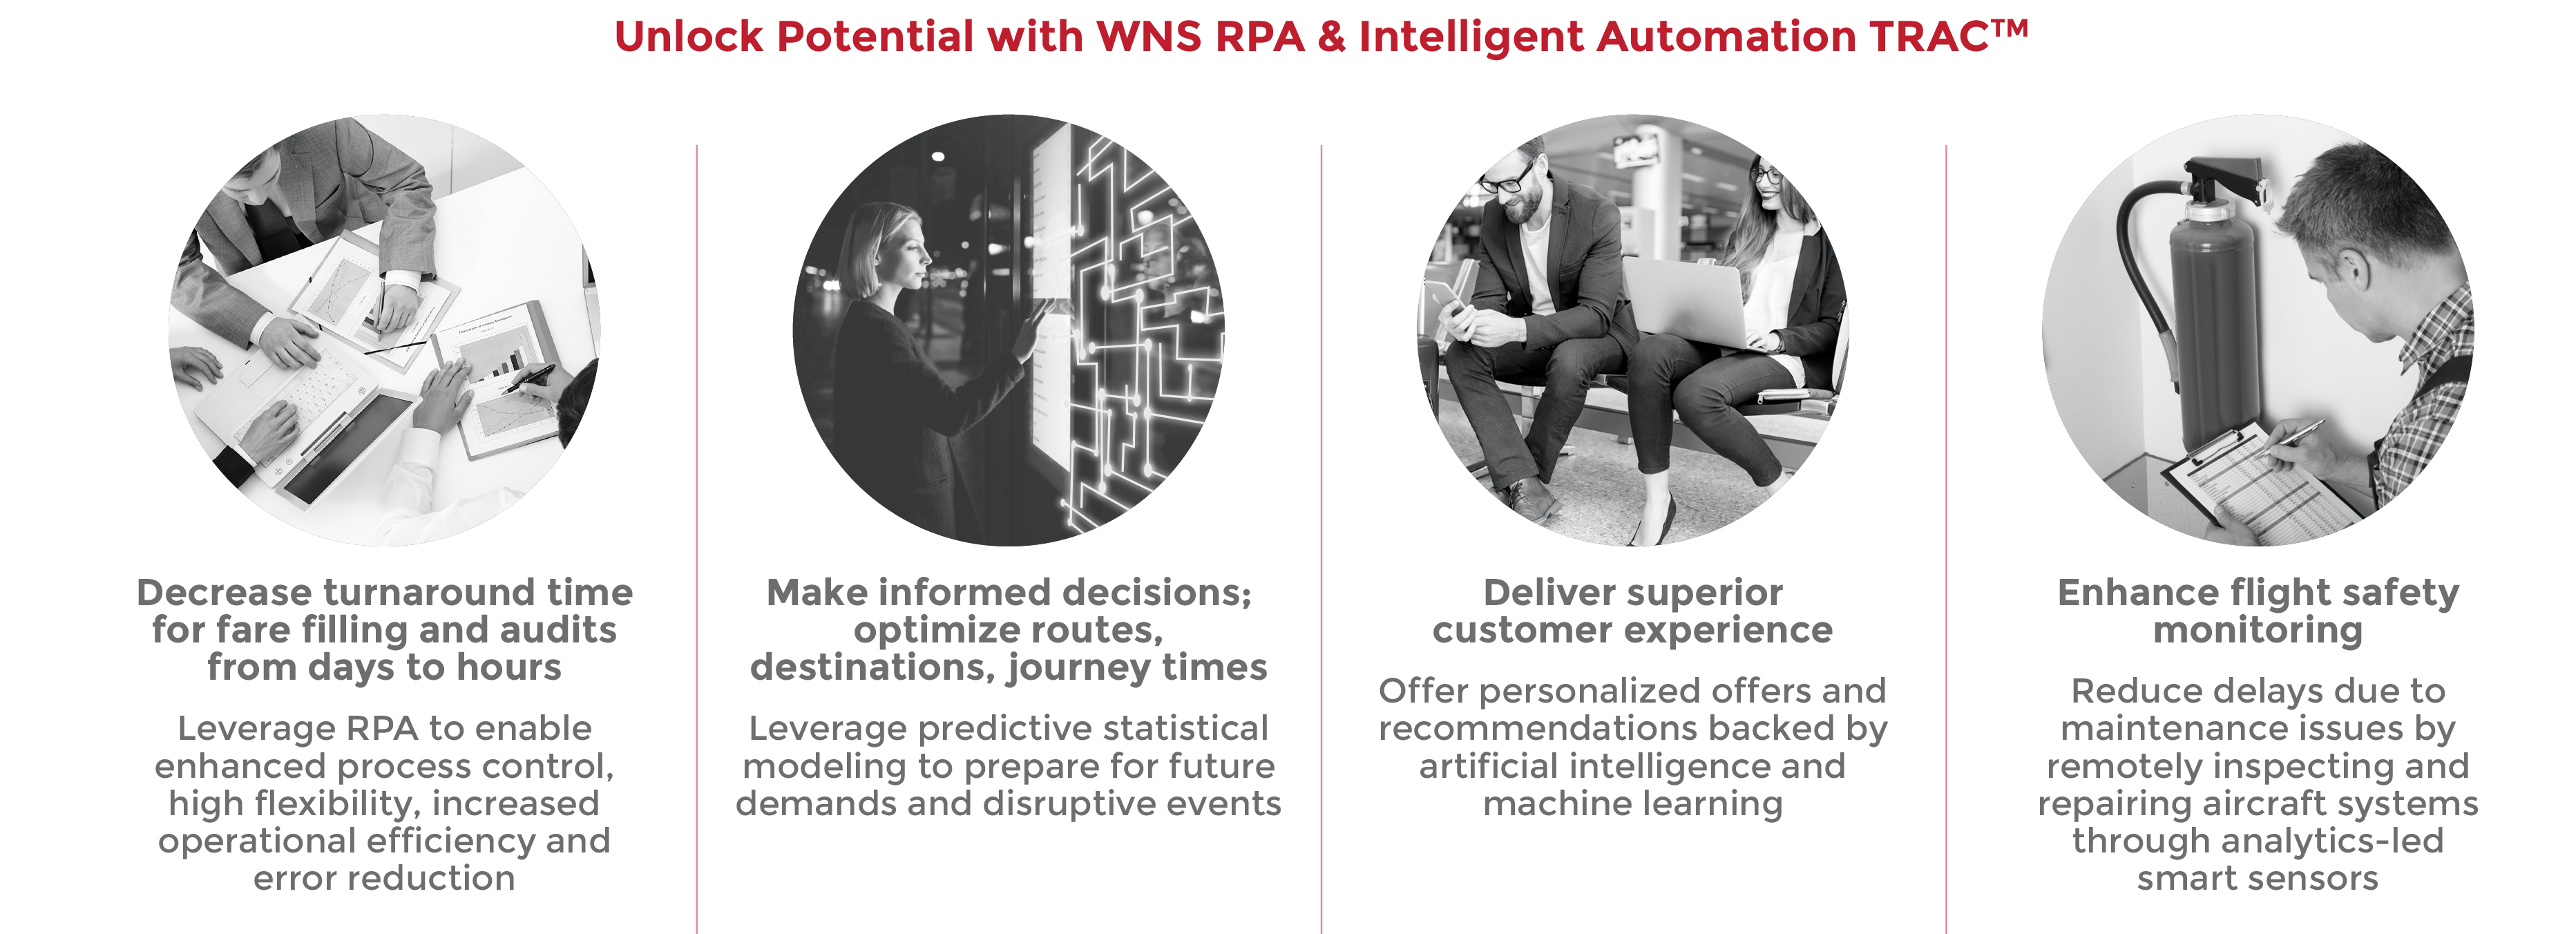 Unlock Potential with WNS RPA & Intelligent Automation TRAC™